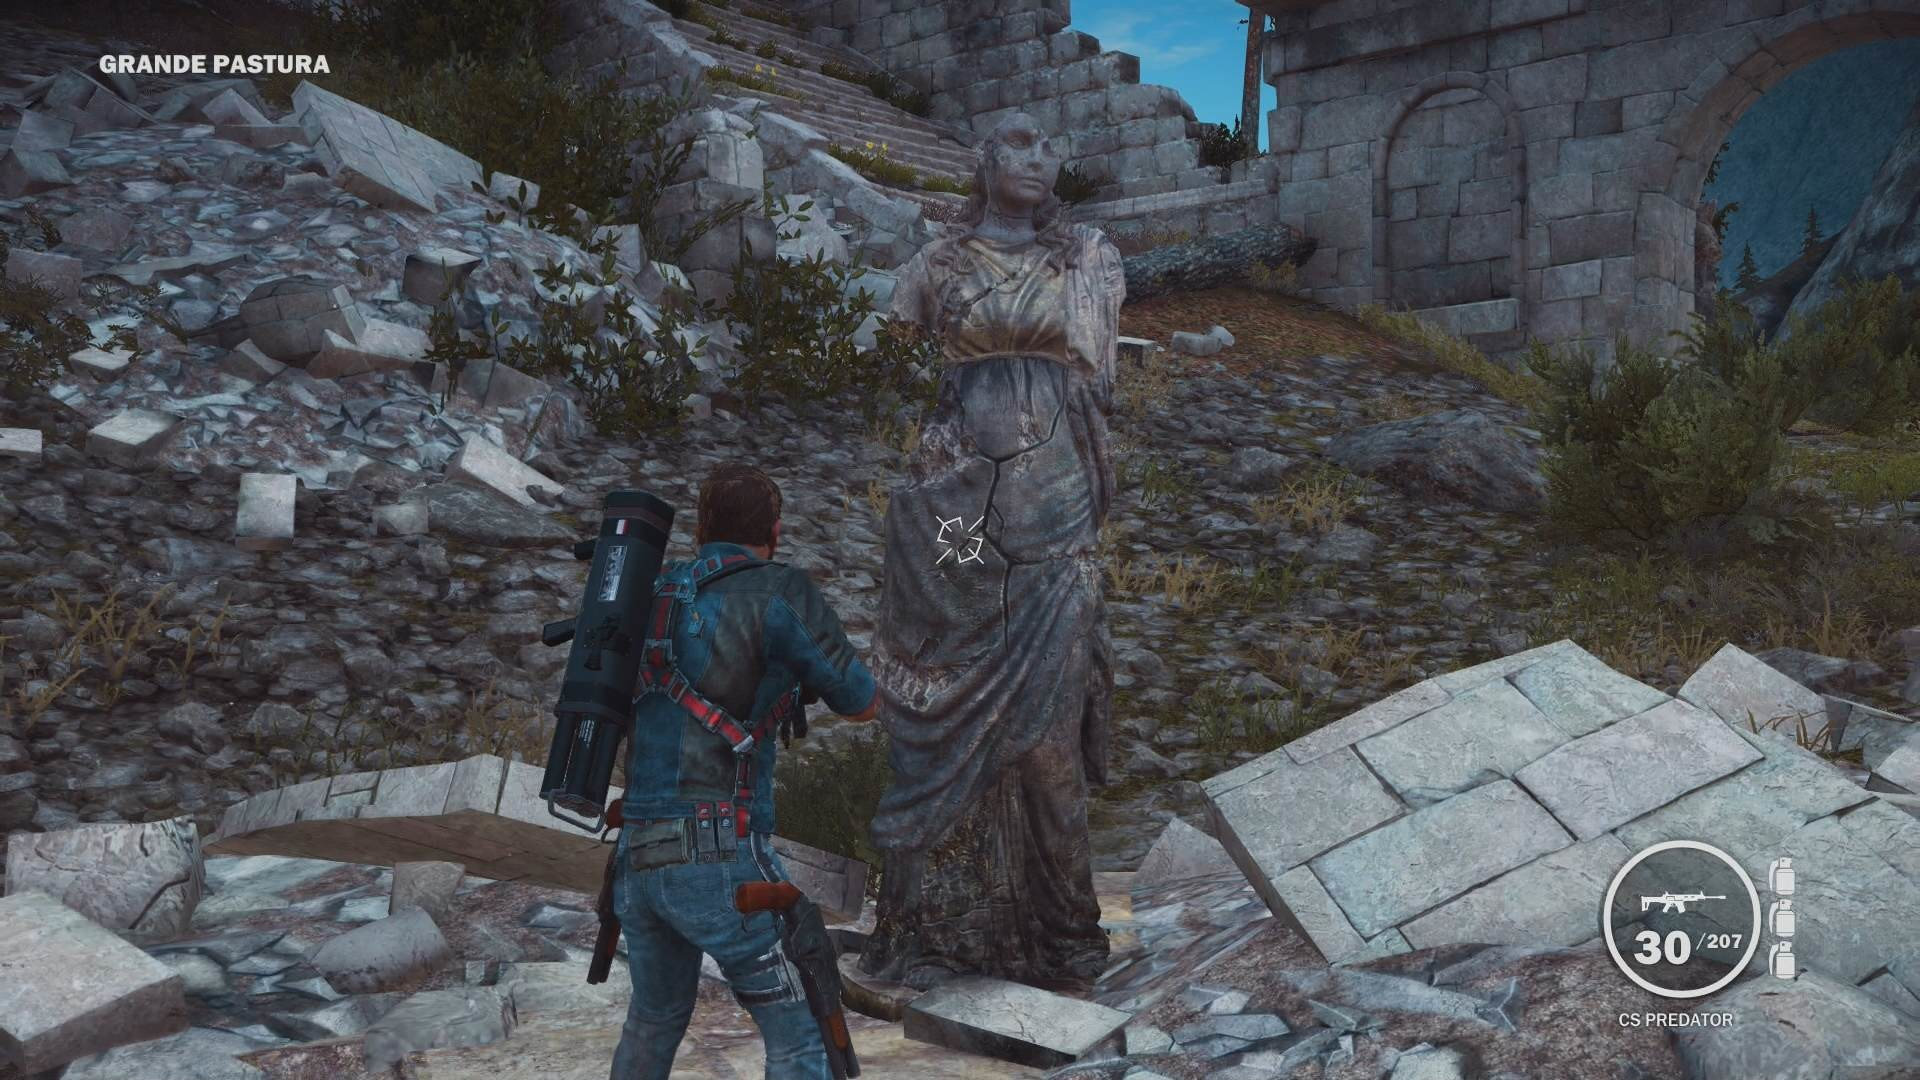 Eleven Great Videogame Easter Eggs From 2014/15 Just Cause 3 Dr. Who Weeping